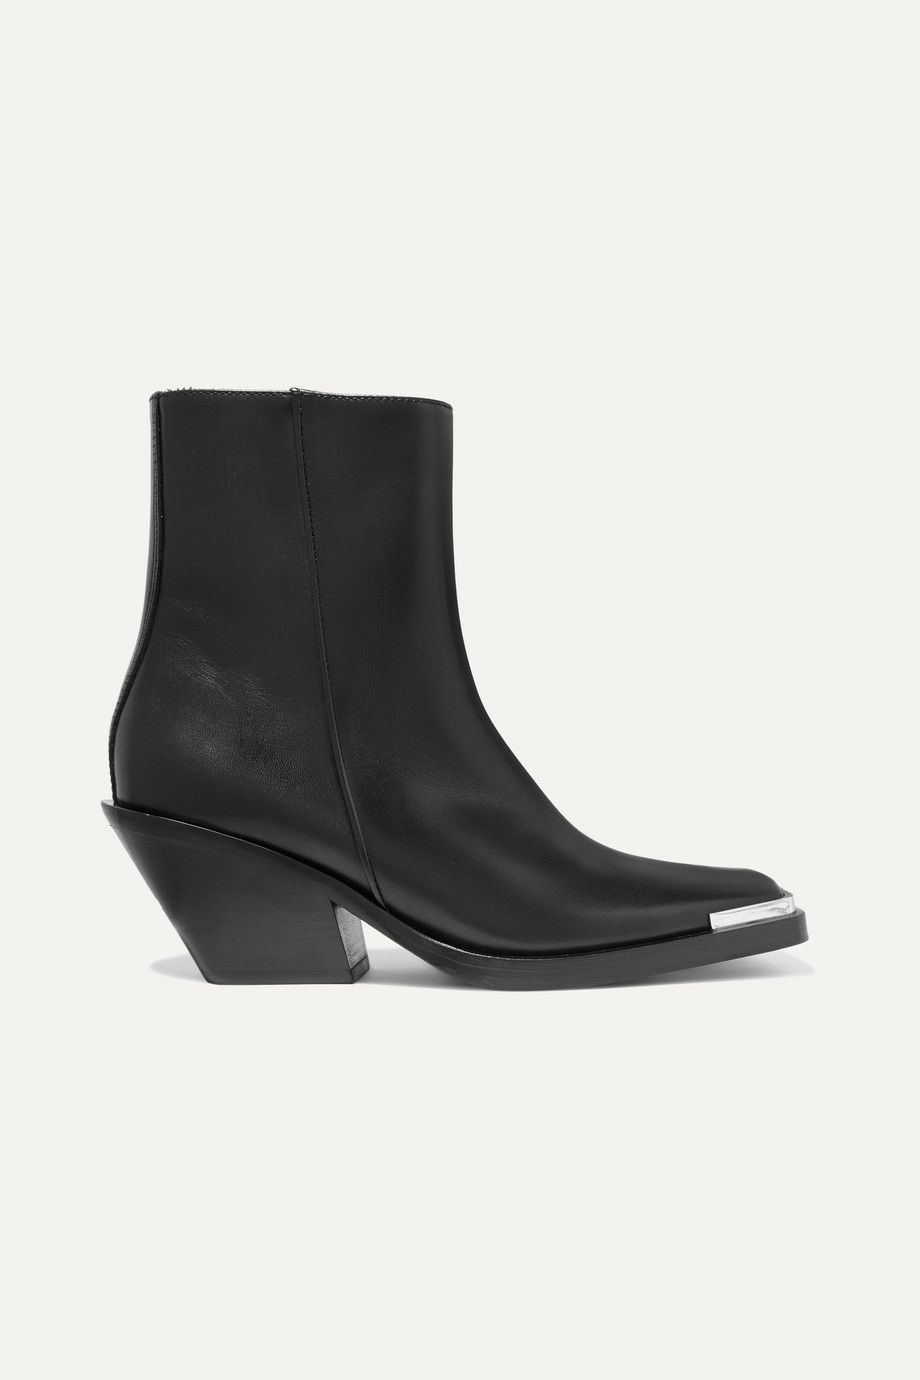 acne-studios-braxton-leather-ankle-boots